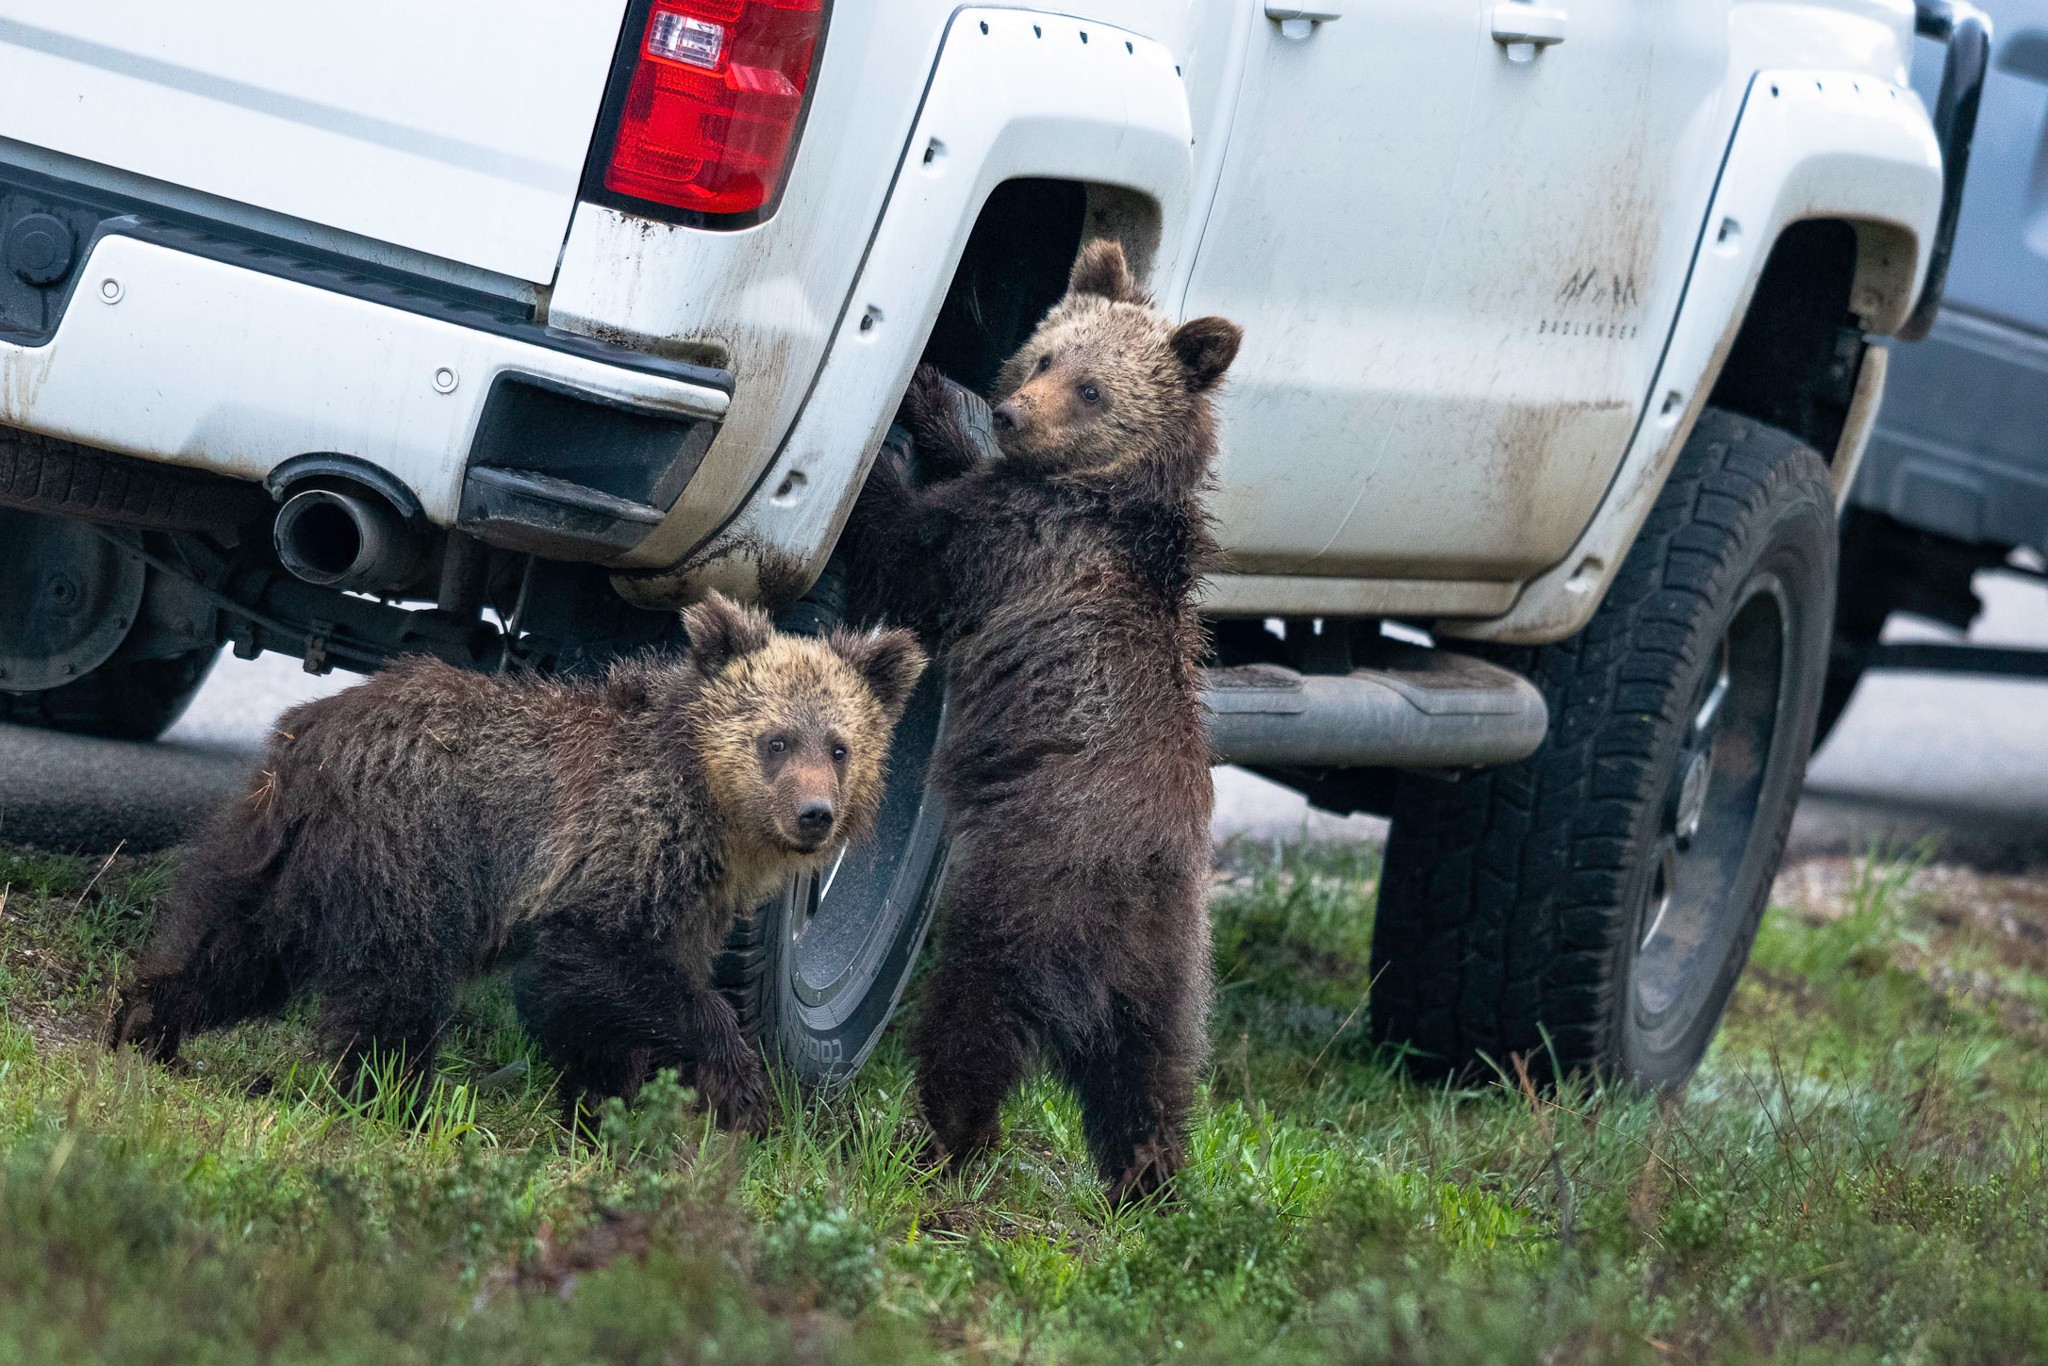 Two small grizzly bears are gathered near the wheel of a truck, and one has his paws on the wheel as if he's turning it